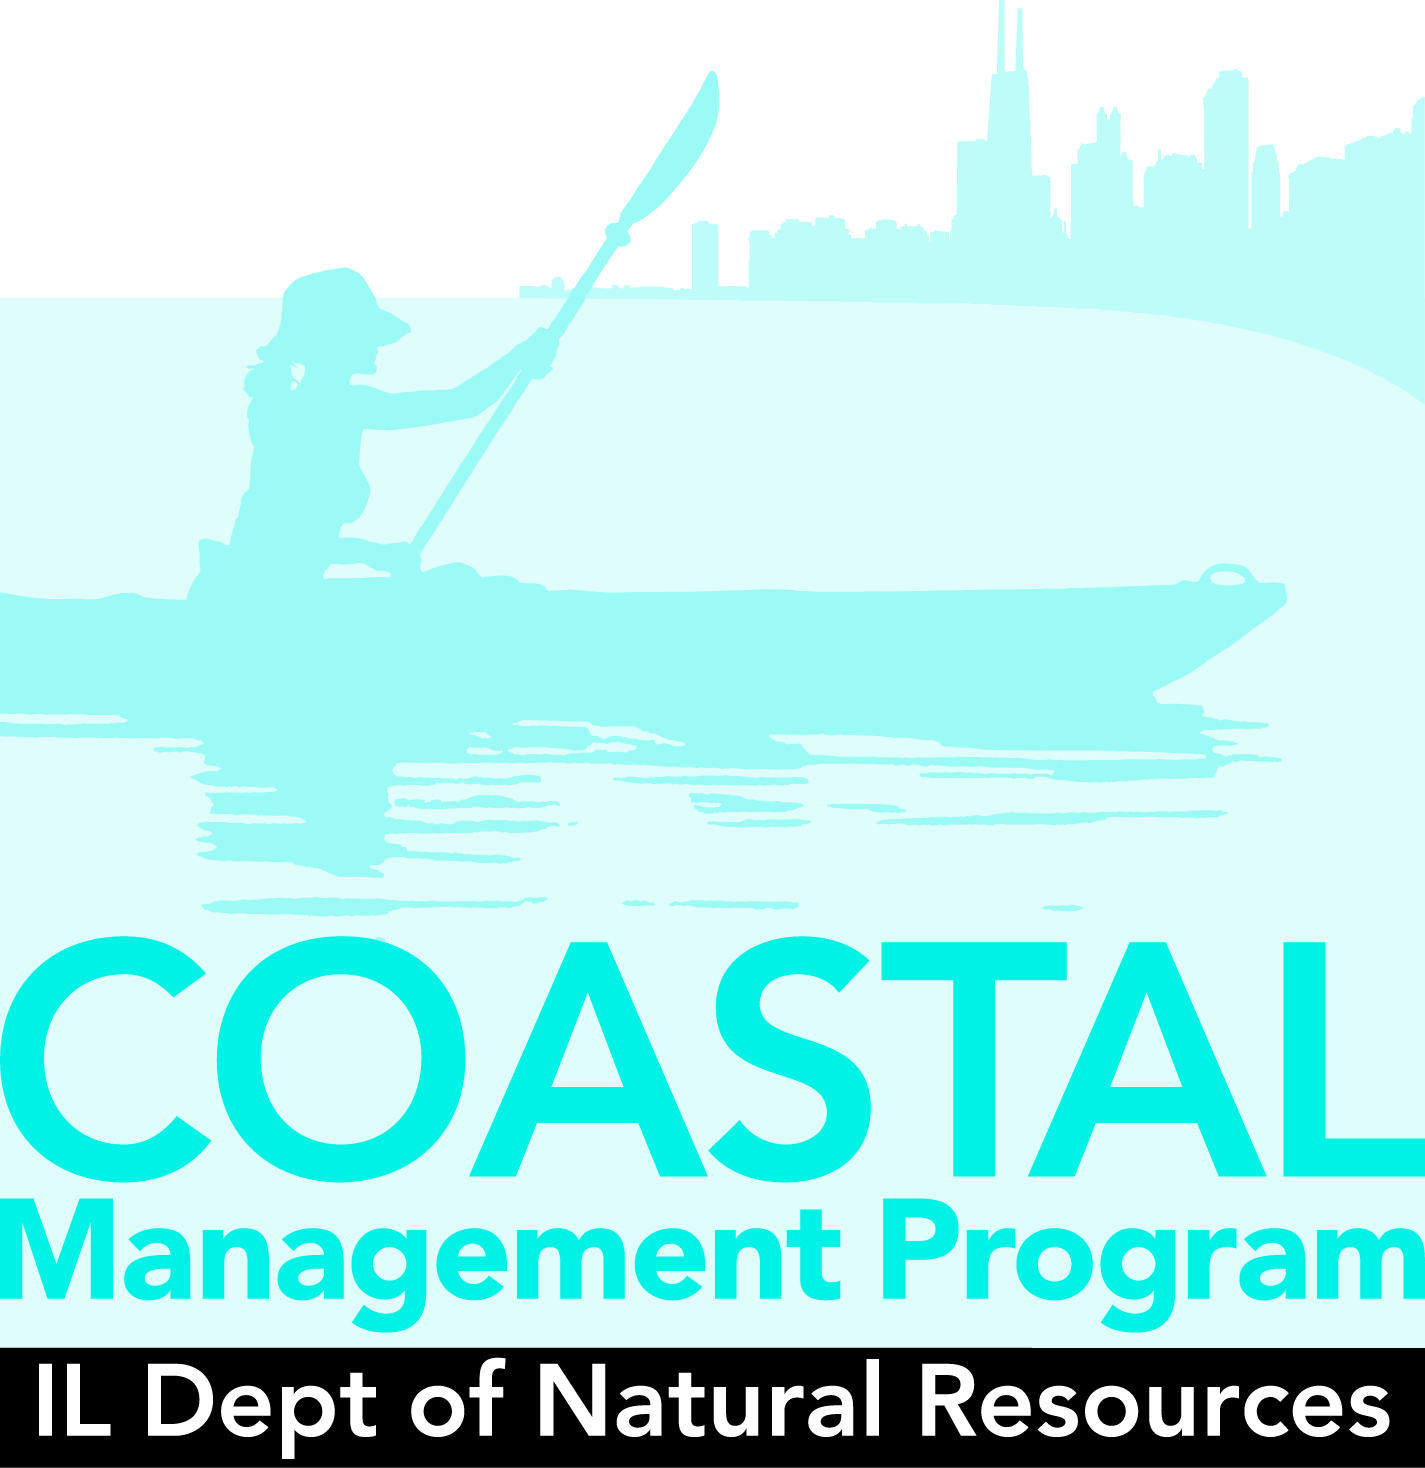 I D N R Coastal Management Program Logo